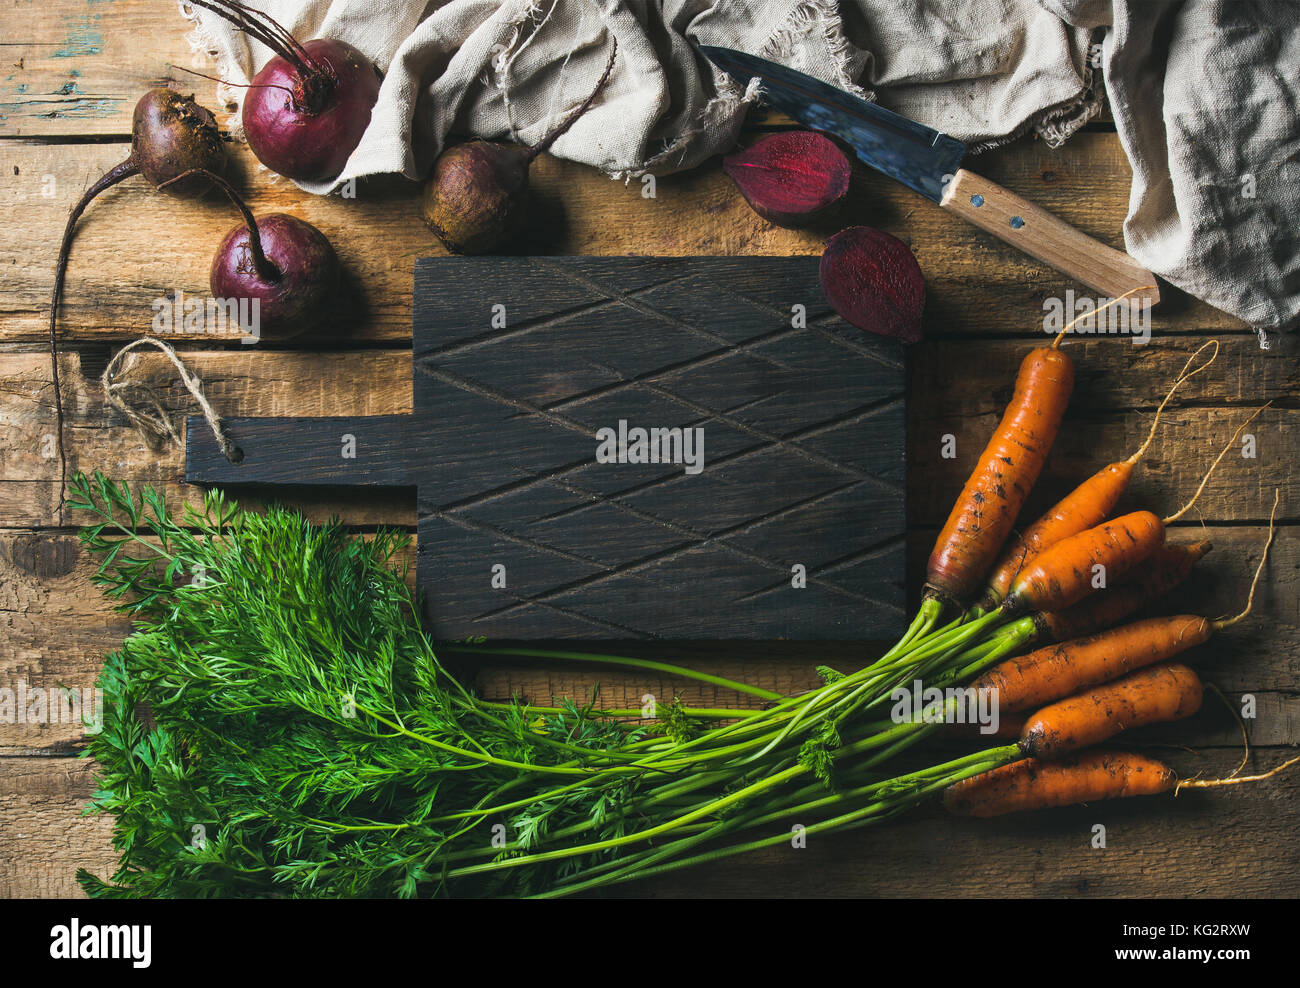 Garden carrots and beetroots with dark cutting board in center - Stock Image